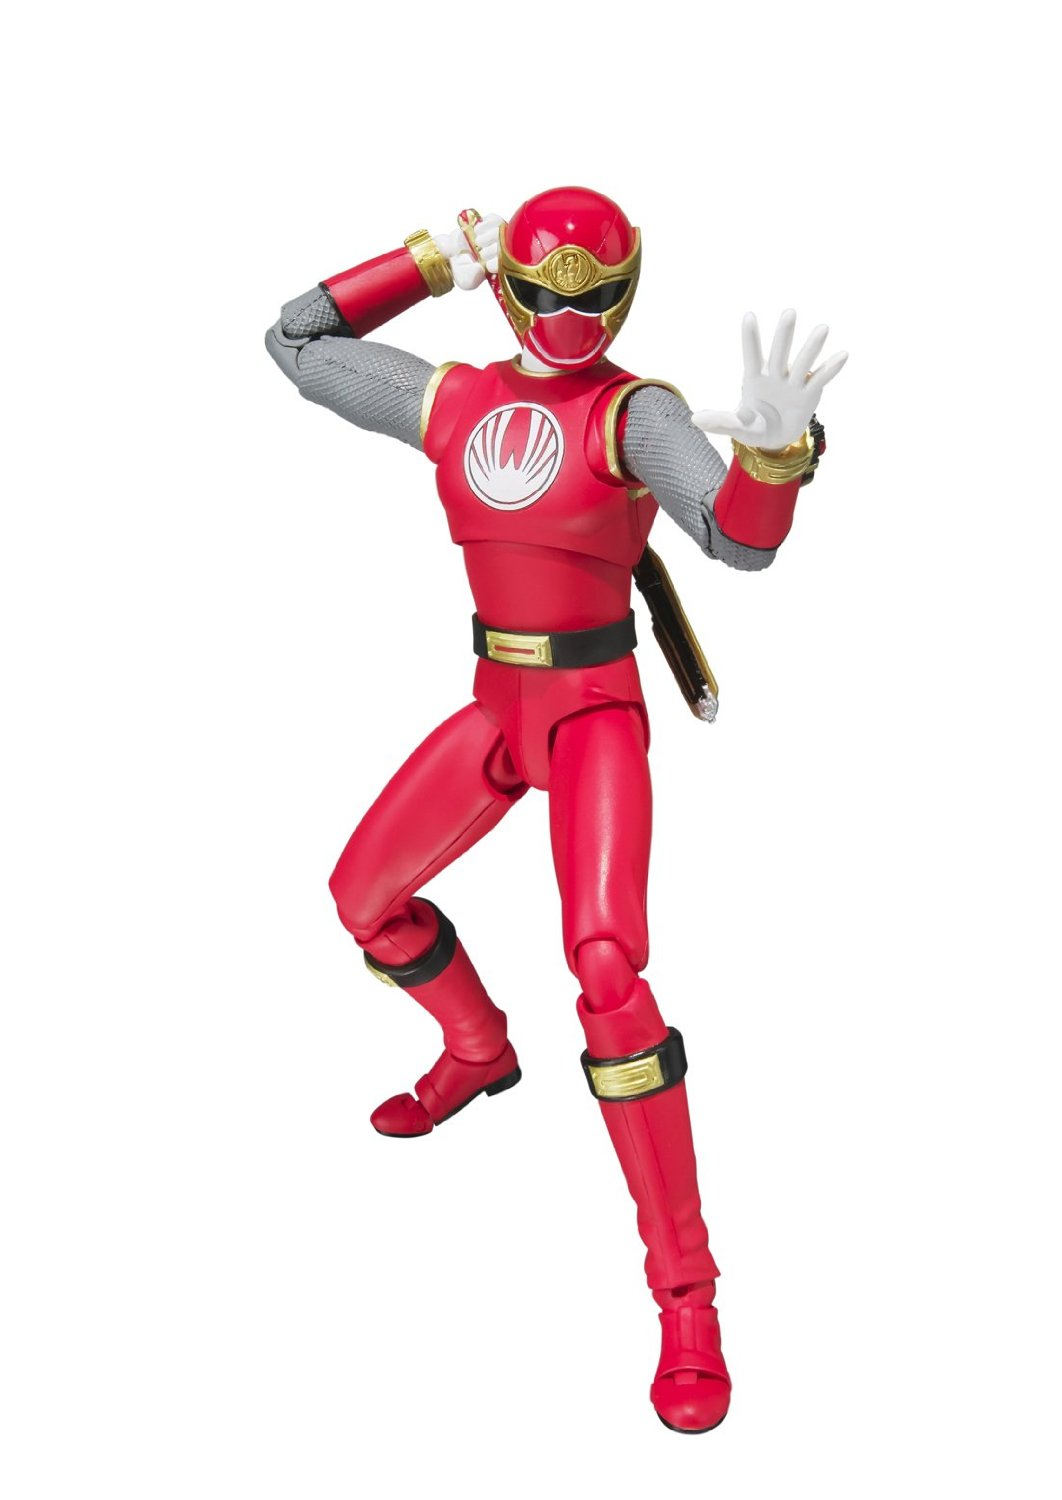 "Bandai Tamashii Nations S.H. Figuarts ""Power Rangers Ninja Storm"" Red Wind Ranger Action Figure"